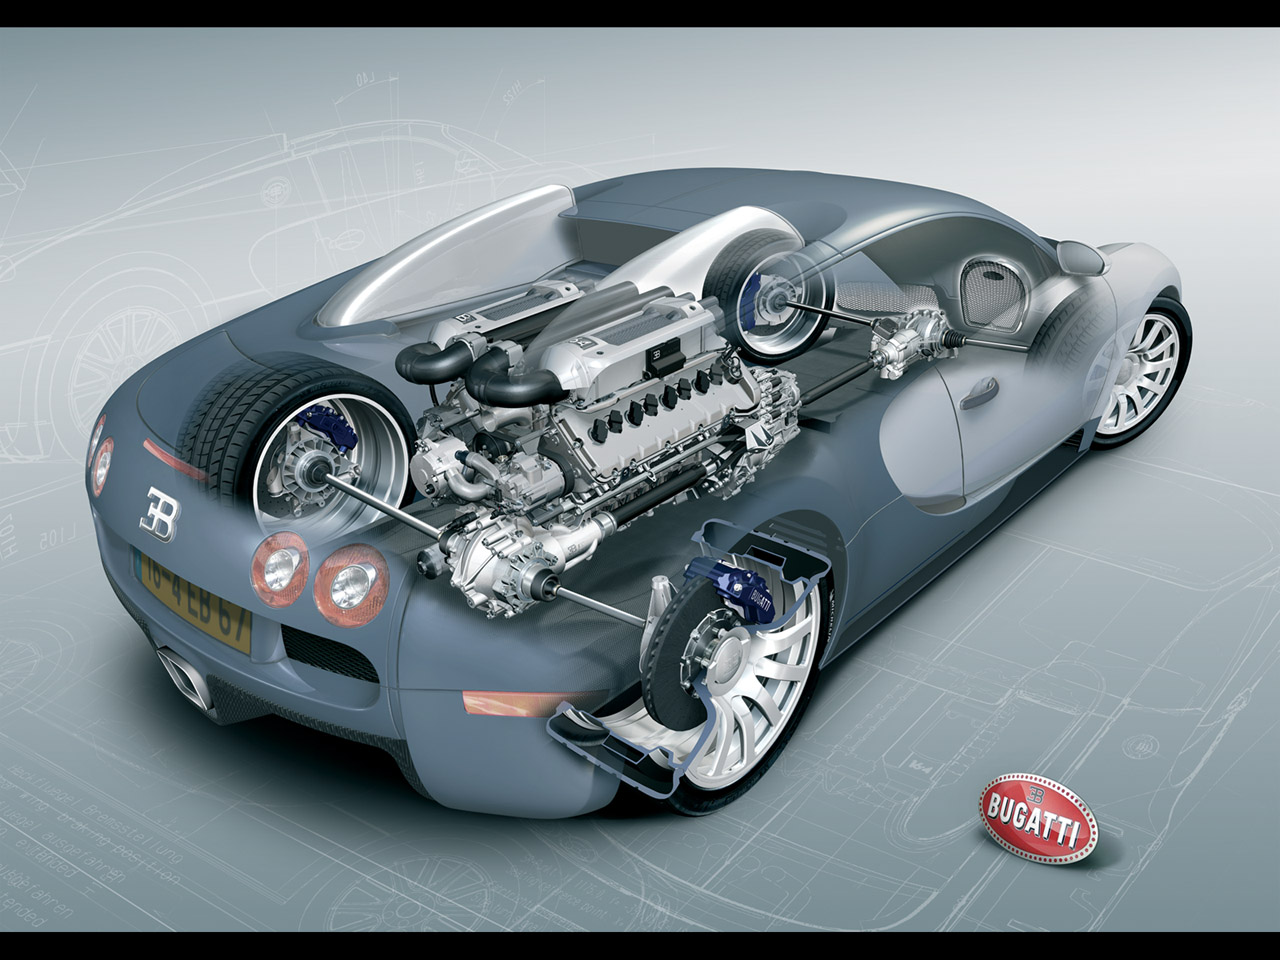 Best Car Guide, Best Car Gallery: Bugatti Veyron Engine